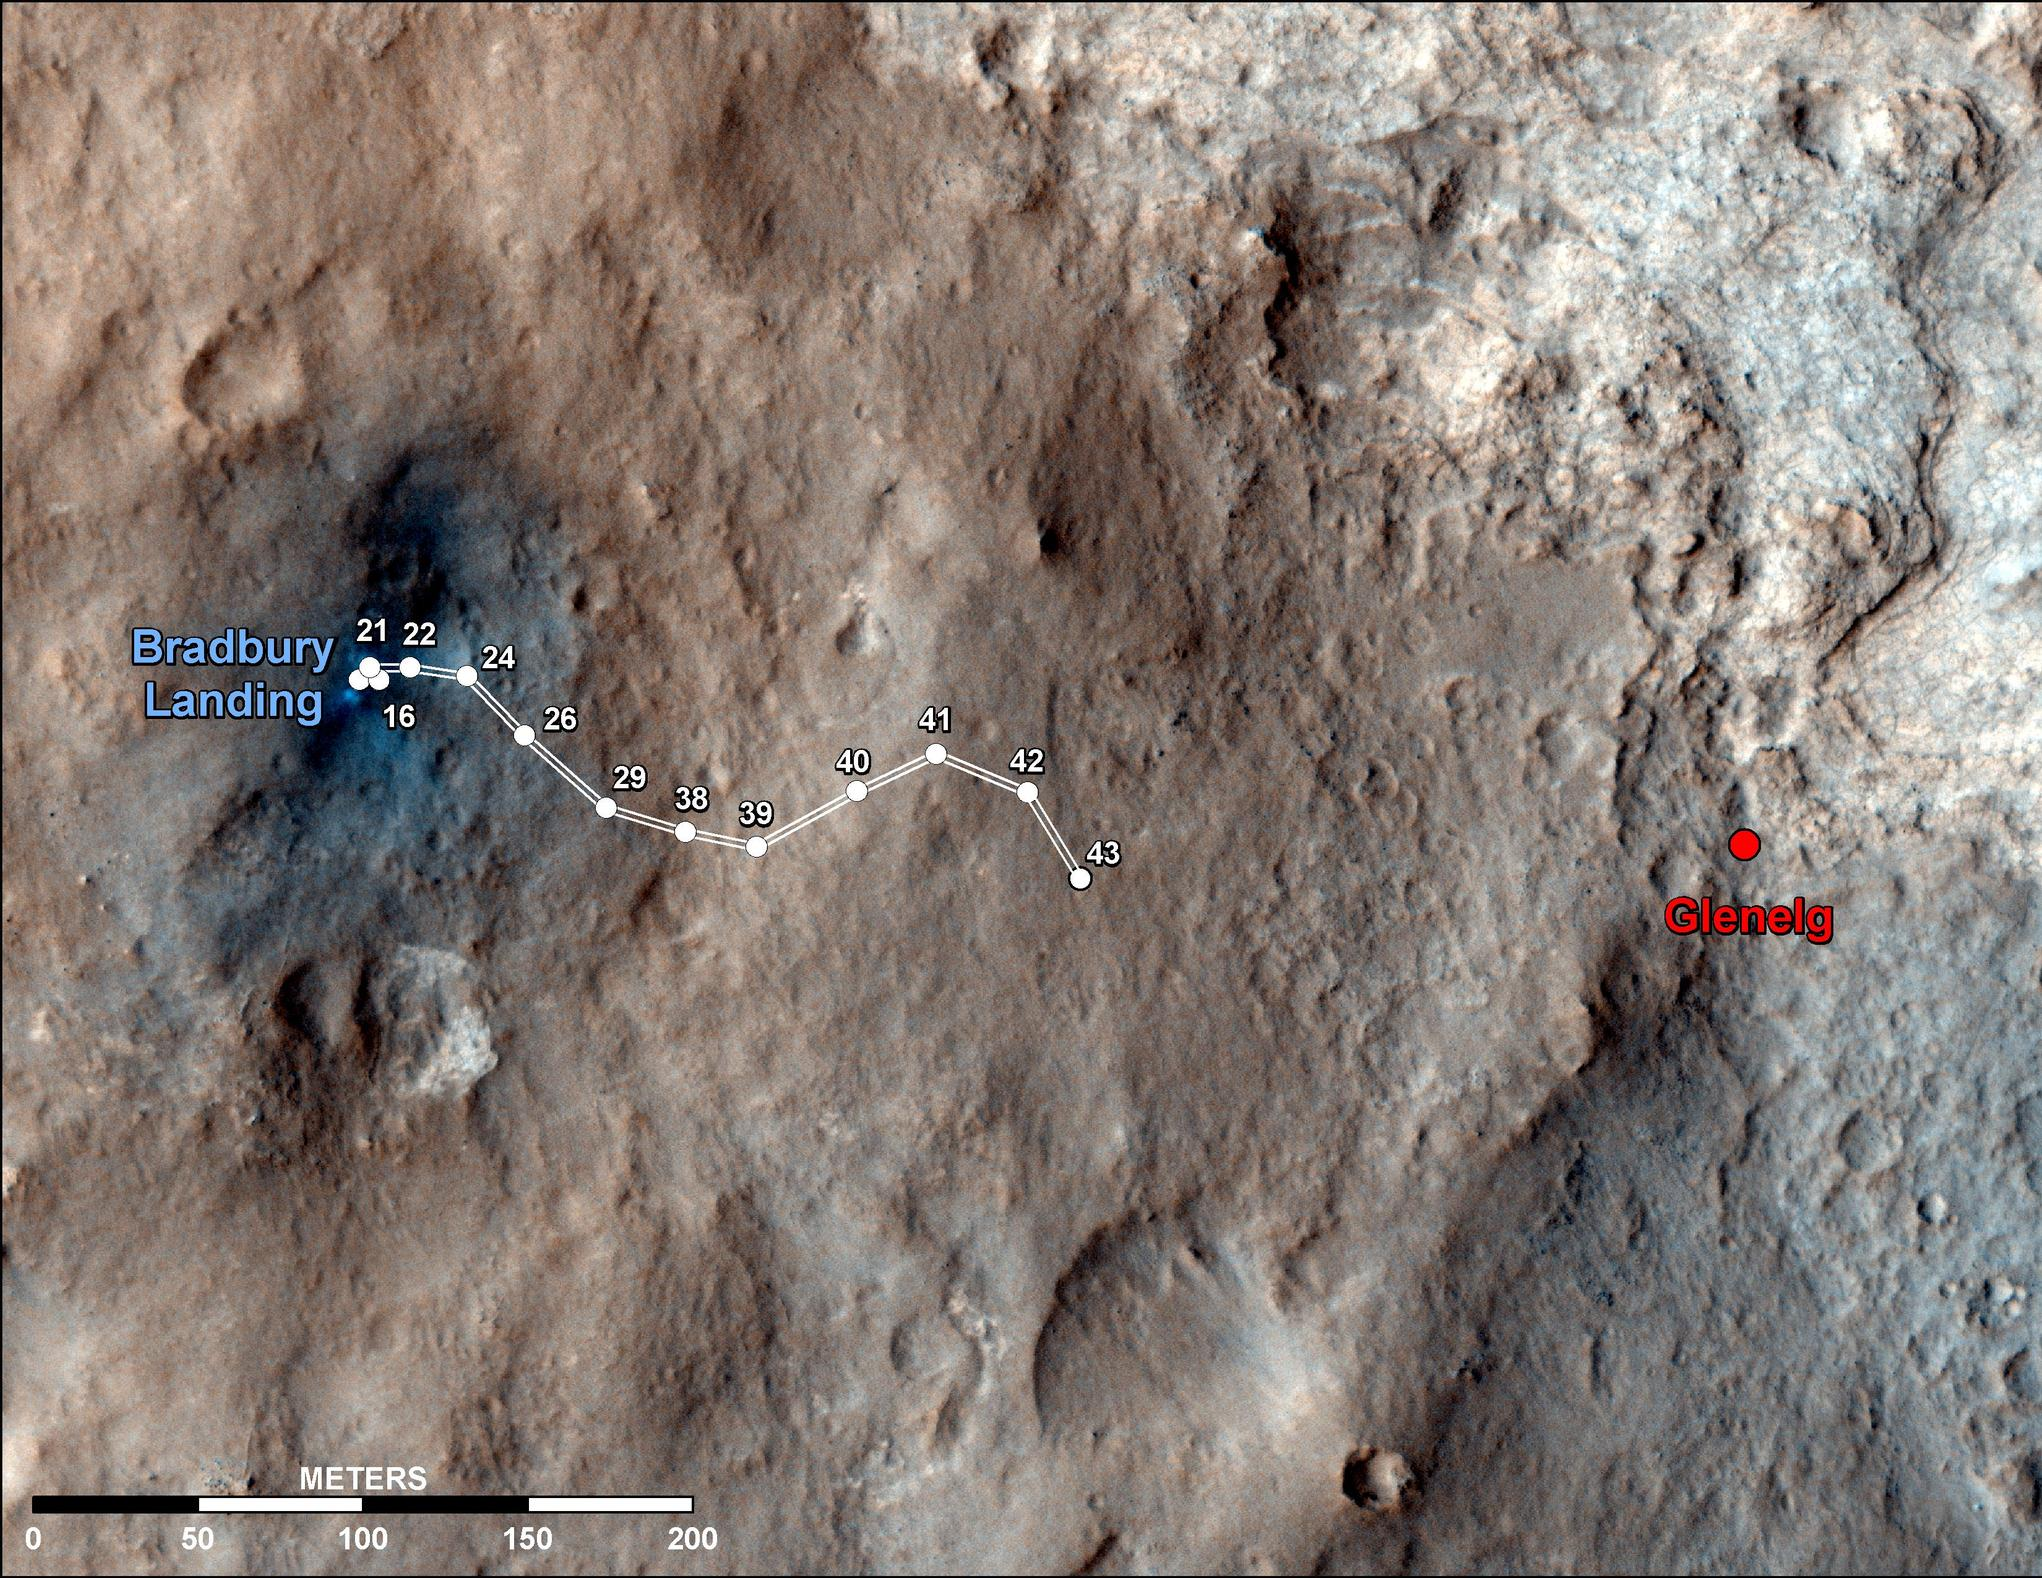 This map shows the route driven by NASA's Mars rover Curiosity through the 43rd Martian day, or sol, of the rover's mission on Mars (Sept. 19, 2012).